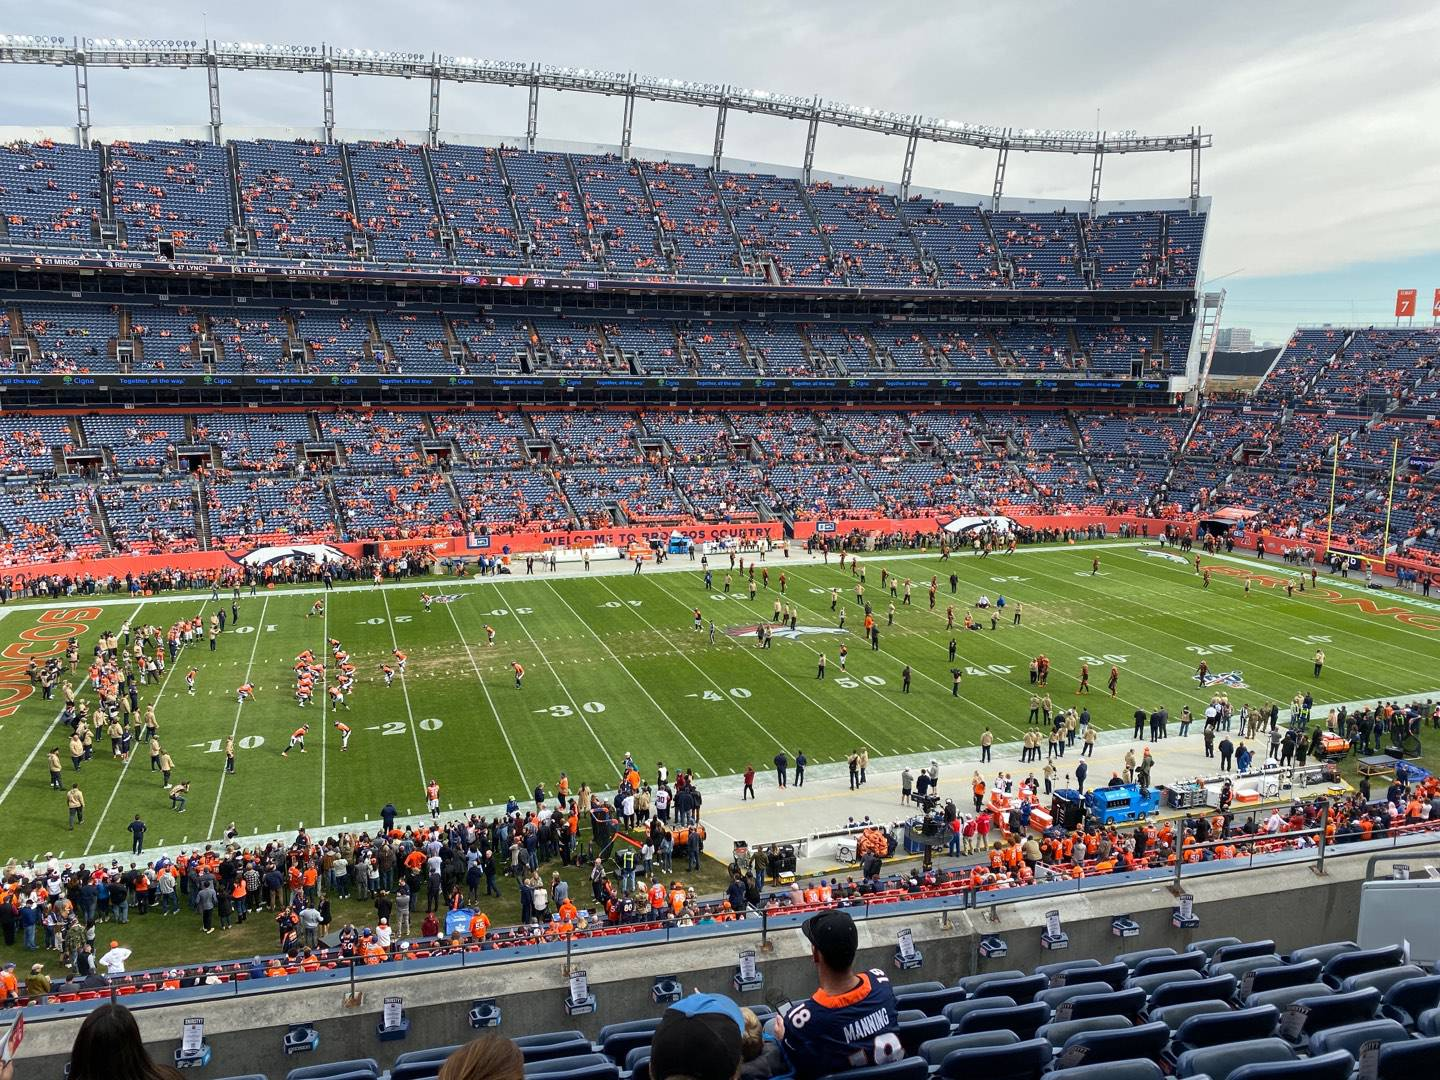 Empower Field at Mile High Stadium Section 312 Row 8 Seat 8